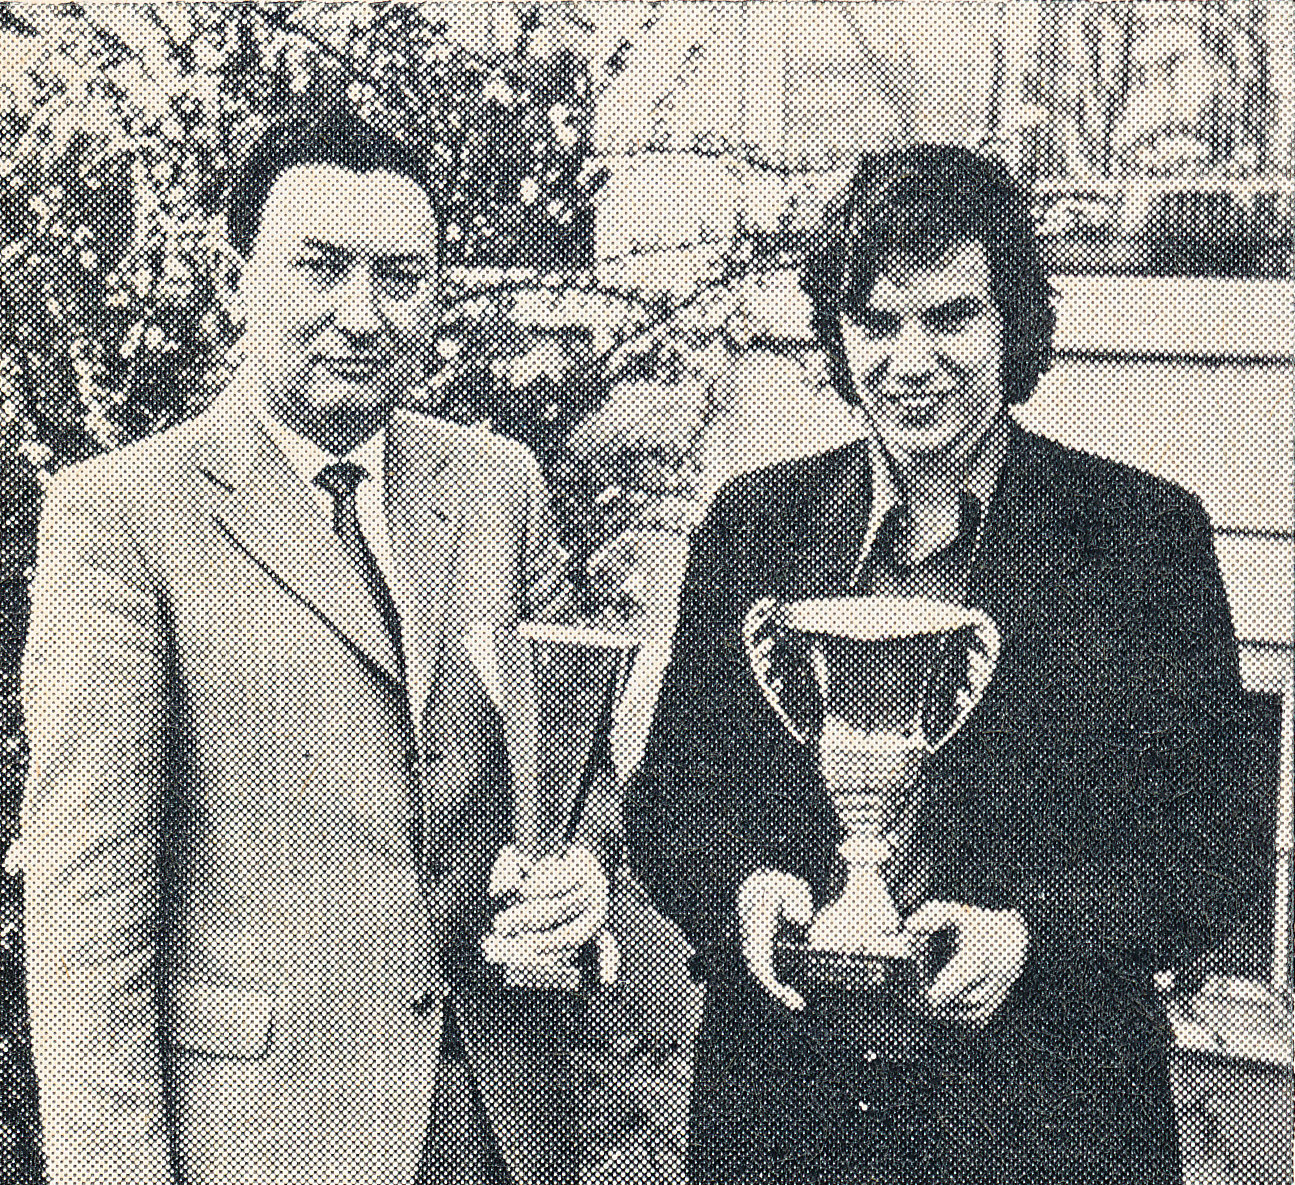 Joint winners of the 1973 Strasbourg Open : N. Karaklaic and Simon Webb. Photogra[hy by Mike Rose. CHESS, Volume 88, June, page 283